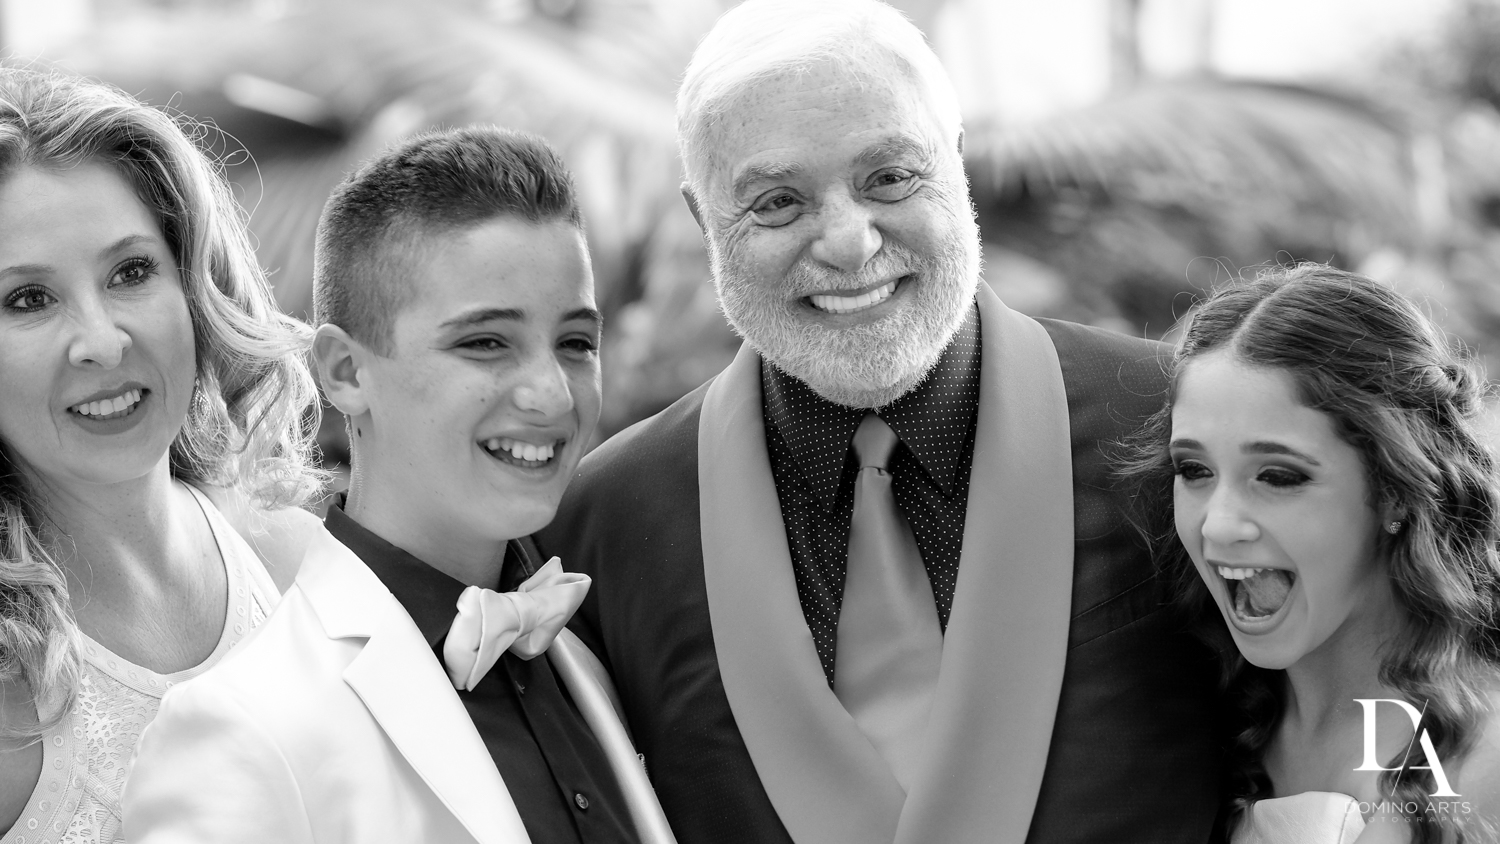 Family pictures at Luxury B'Nai Mitzvah at Woodfield Country Club by Domino Arts Photography